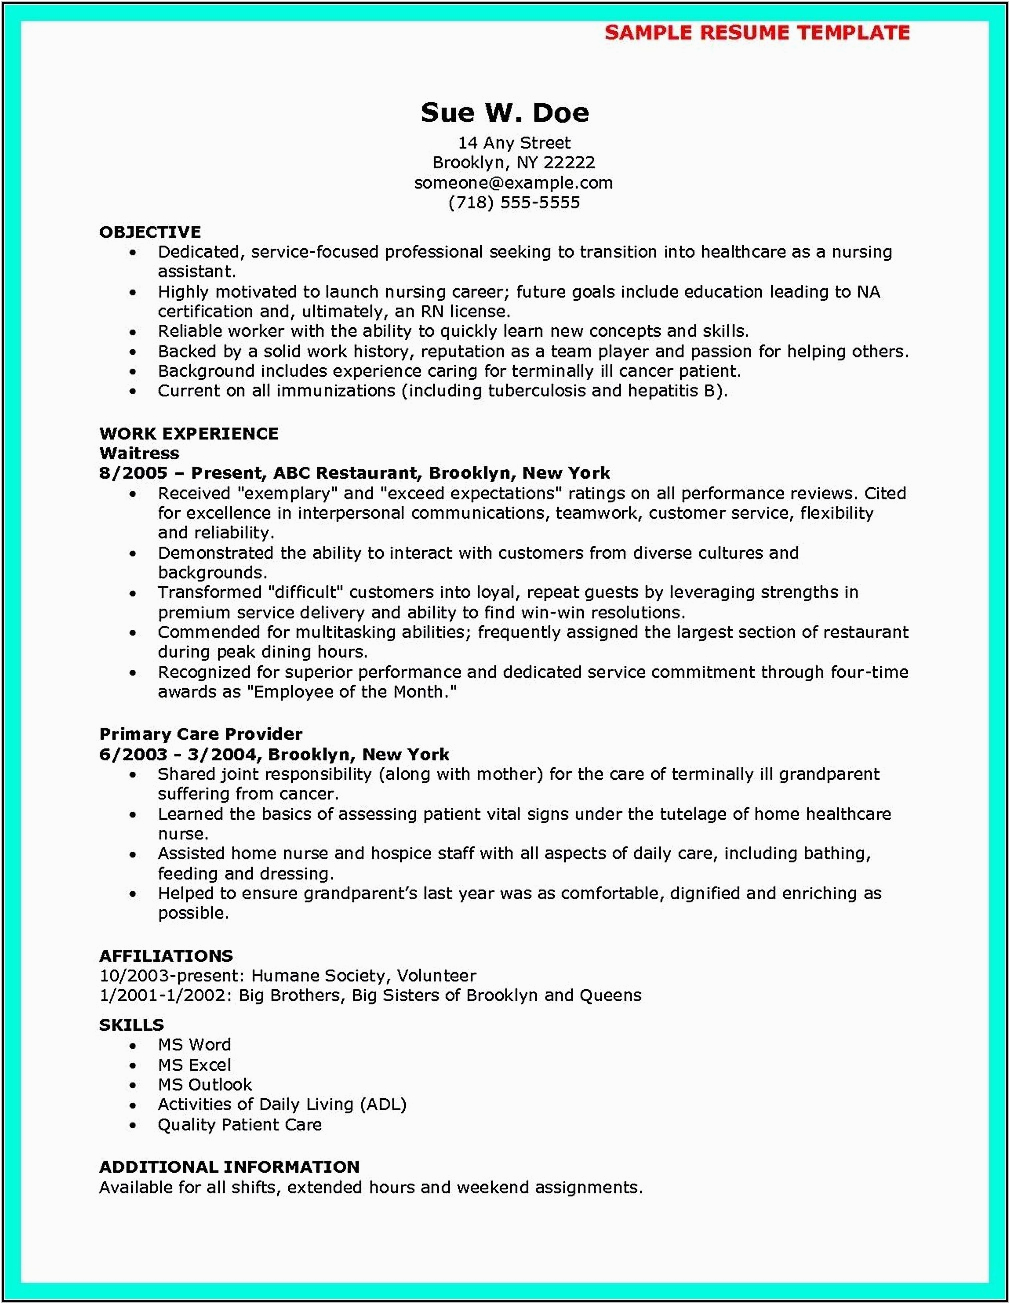 resume for cna job with no experience